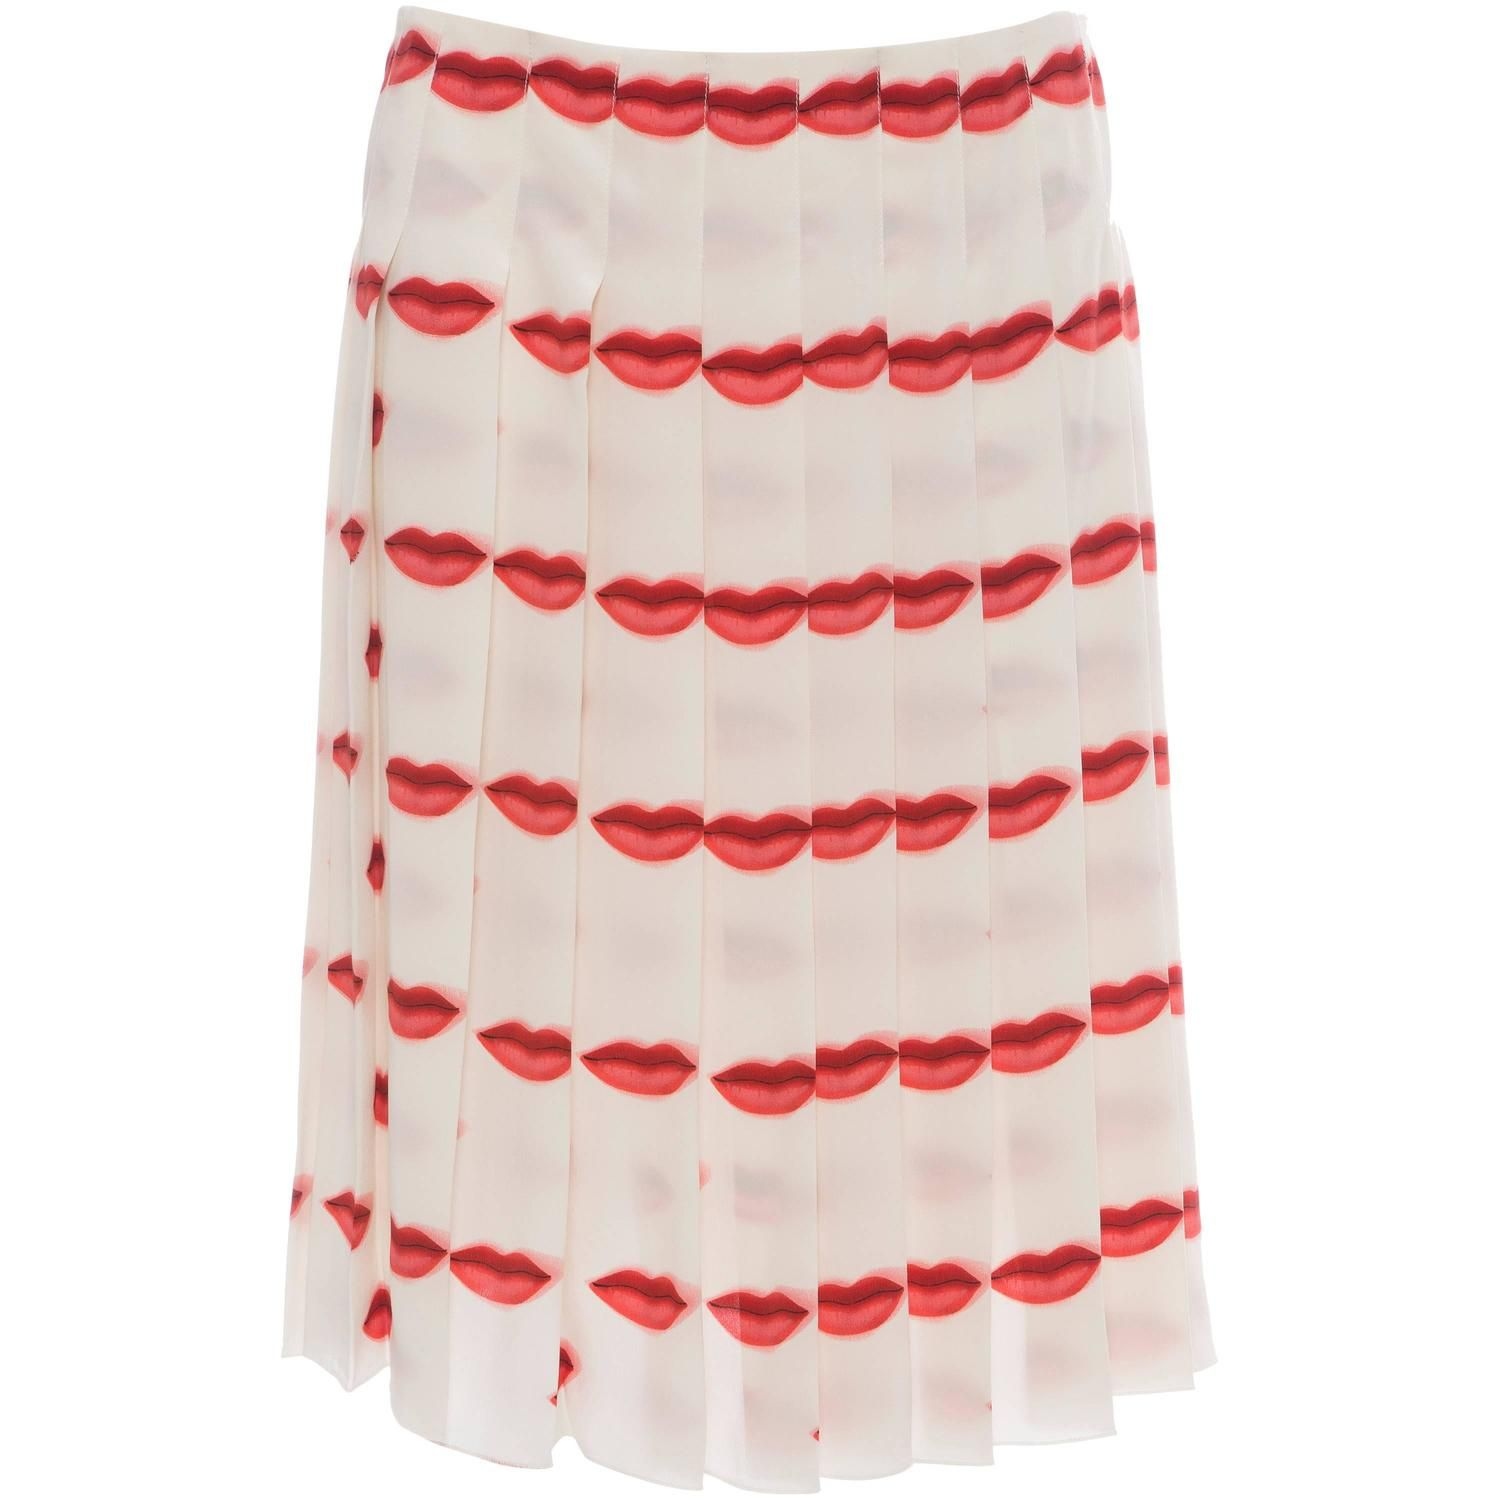 1d9c7f59ee Prada Silk Pleated Lip Print Skirt, Spring - Summer 2000 | From a  collection of